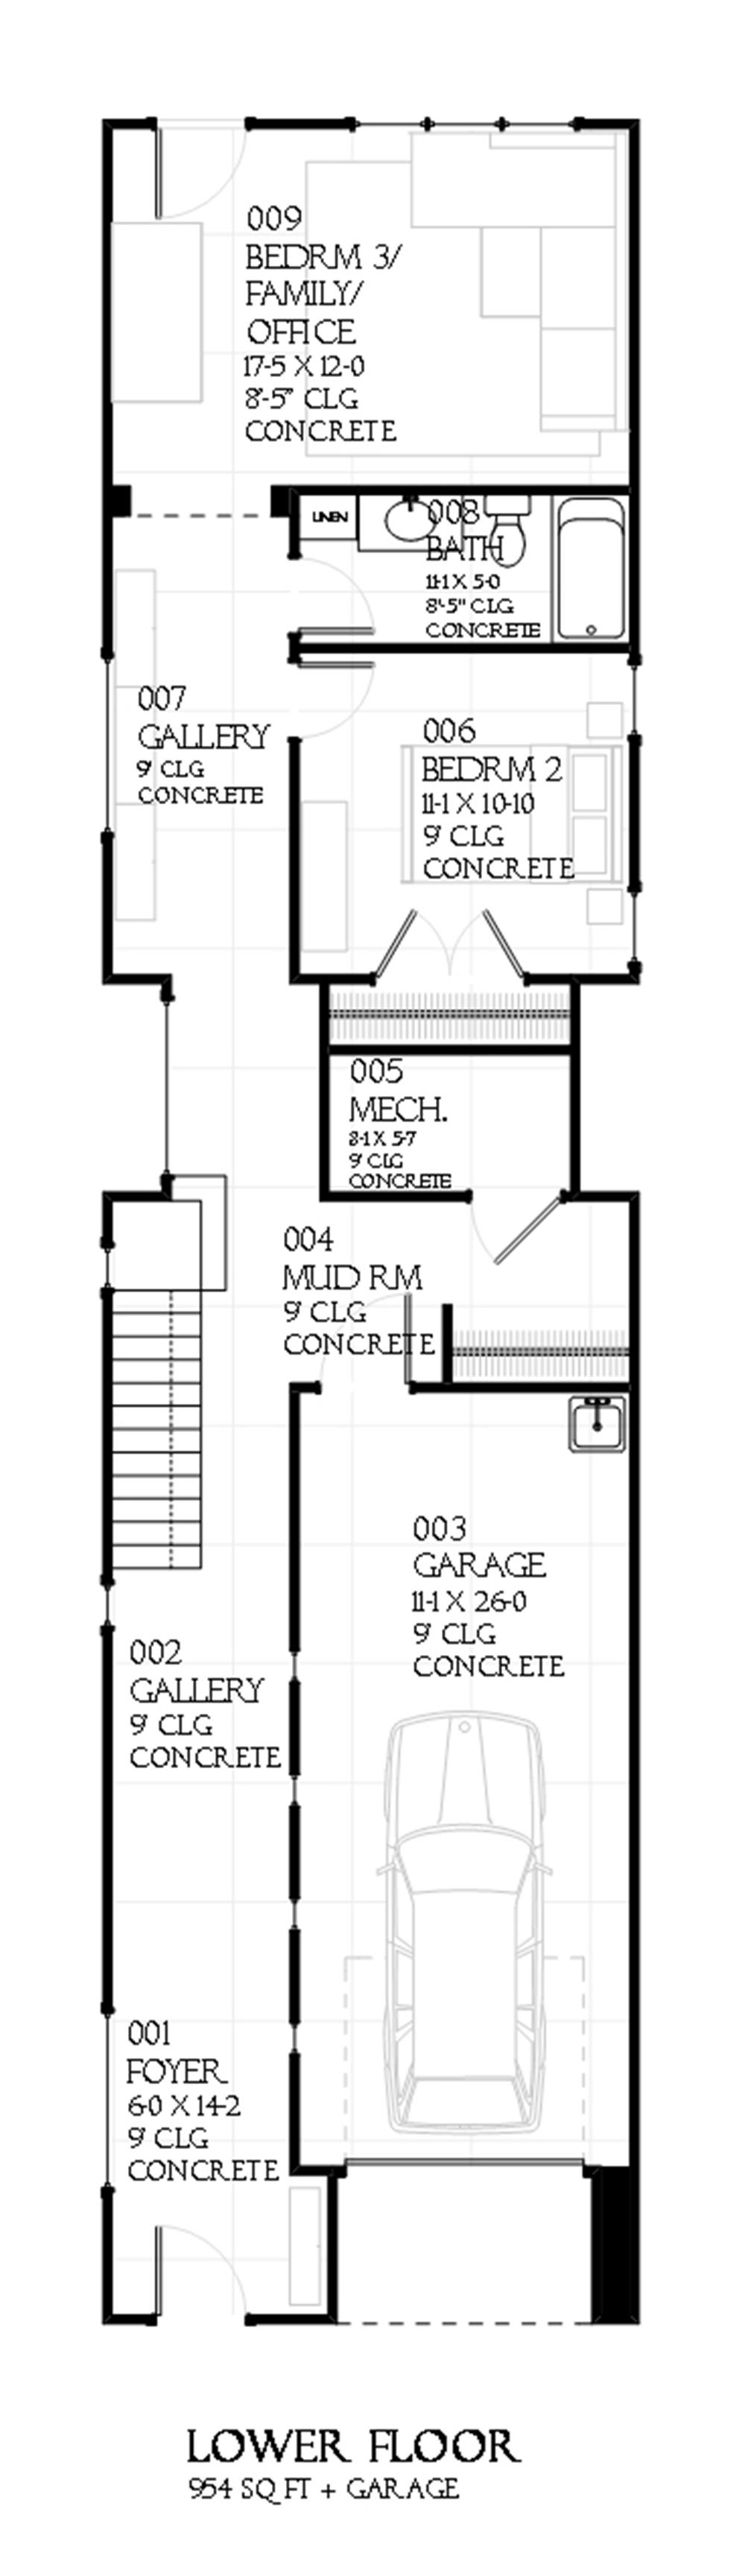 168-1102 house plan lower level